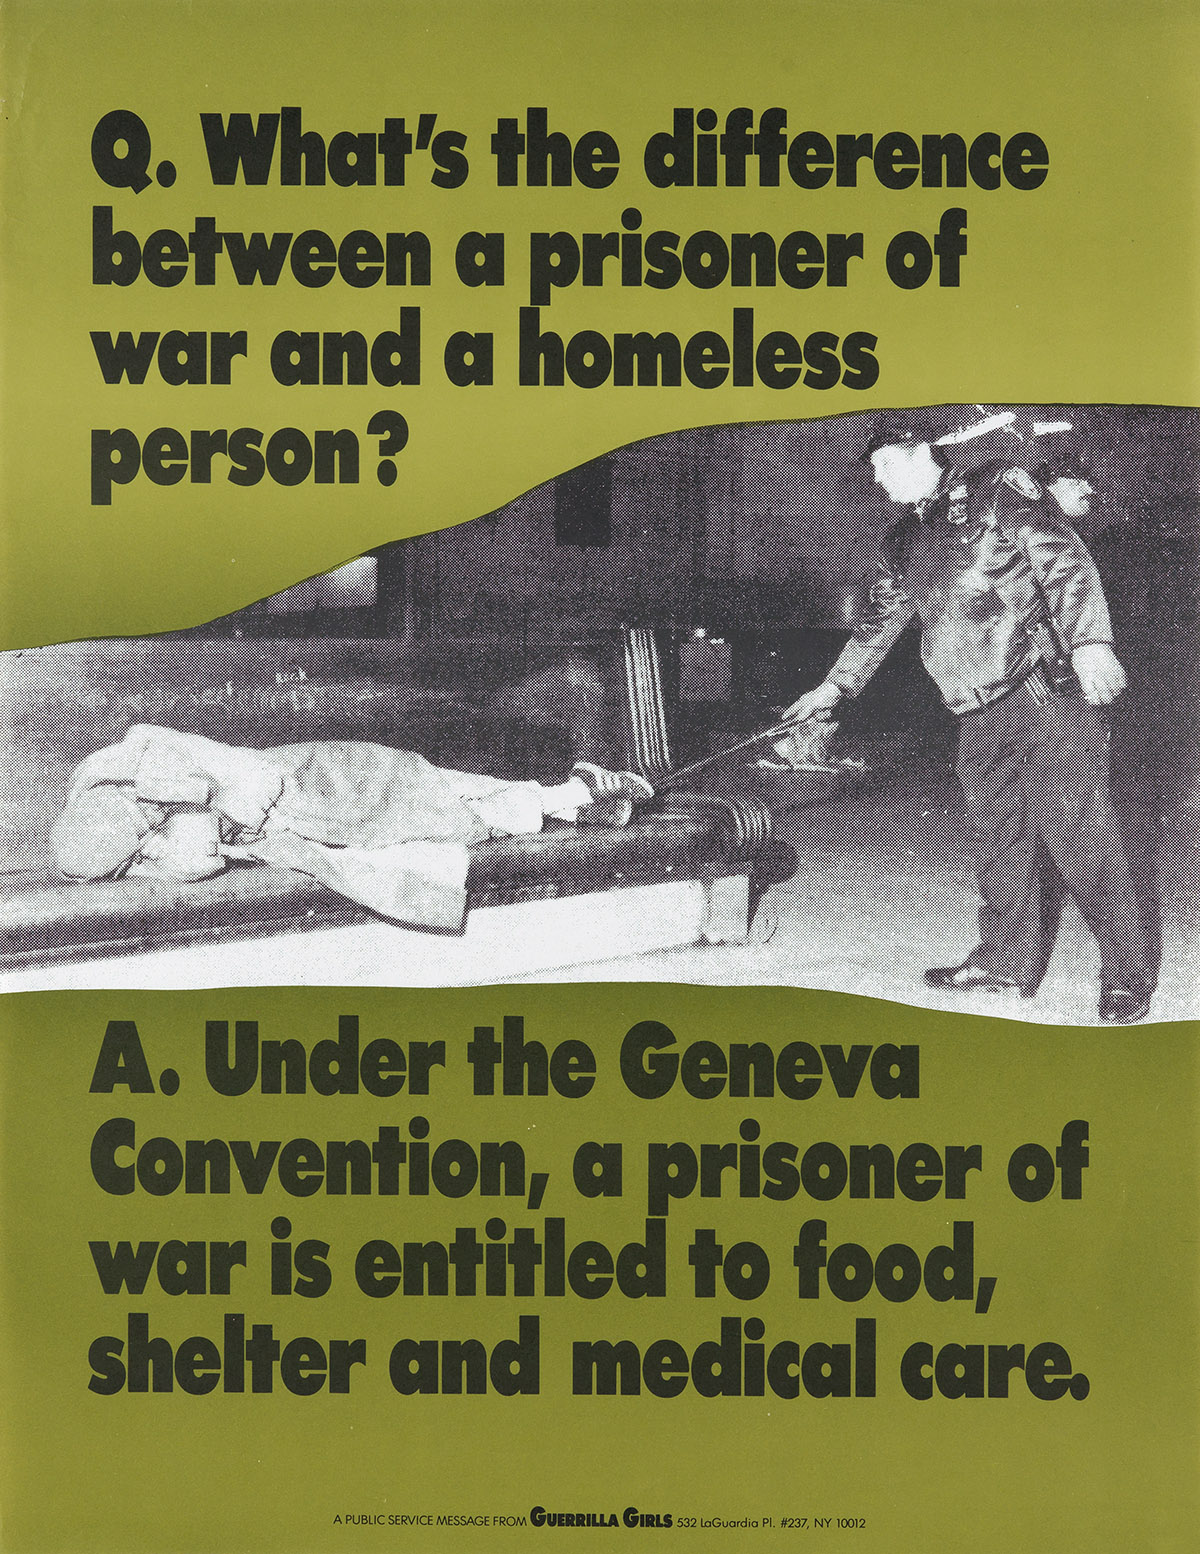 GUERRILLA GIRLS. Q. WHATS THE DIFFERENCE BETWEEN A PRISONER OF WAR AND A HOMELESS PERSON? 1991. 21x16 inches, 53x40 cm.